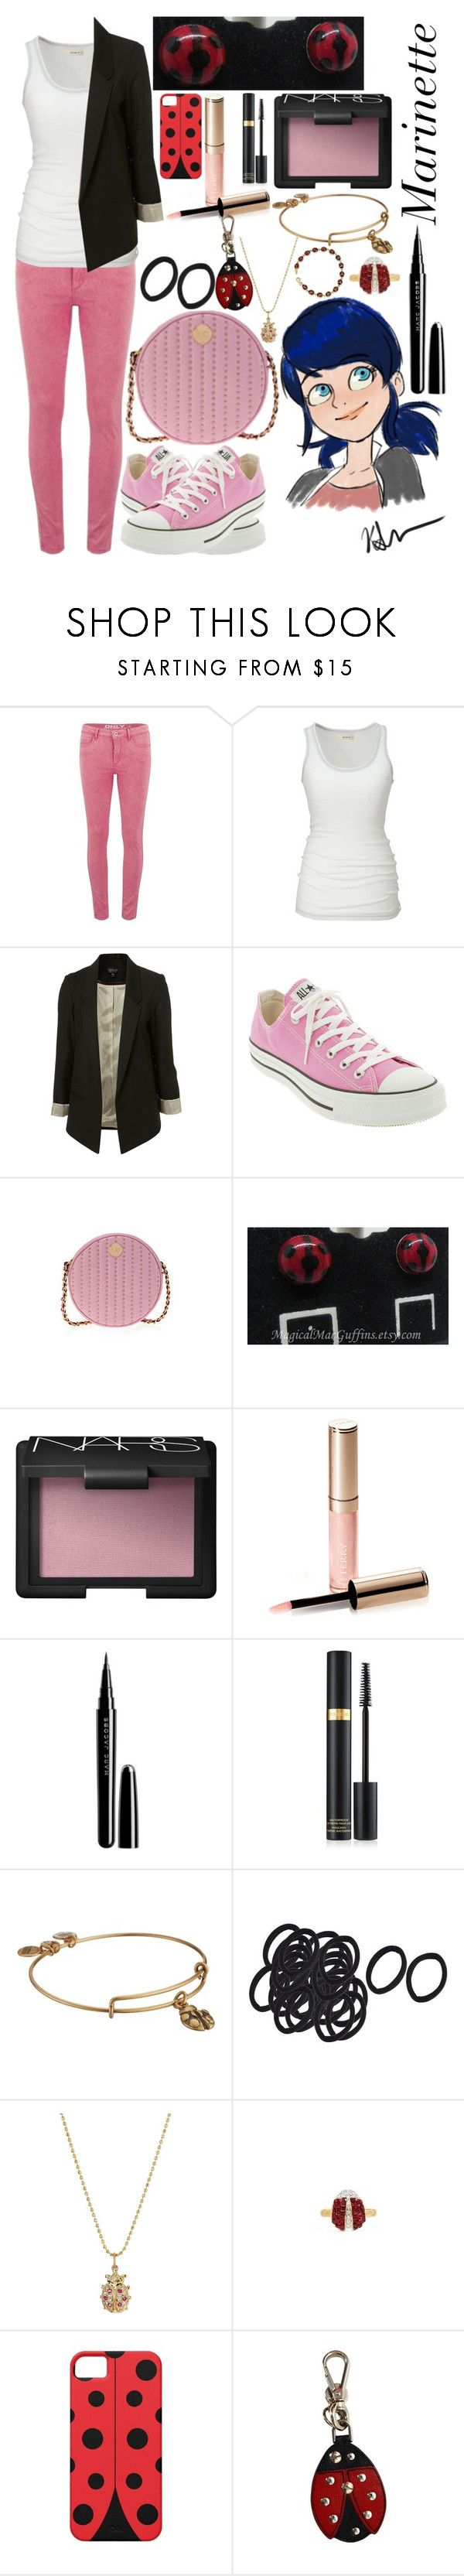 """""""Marinette Dupain-Cheng: Miraculous Ladybug"""" by ender-chic52 ❤ liked on Polyvore featuring ONLY, Lee, Converse, Henri Bendel, NARS Cosmetics, By Terry, Marc Jacobs, Tom Ford, Alex and Ani and Sydney Evan"""